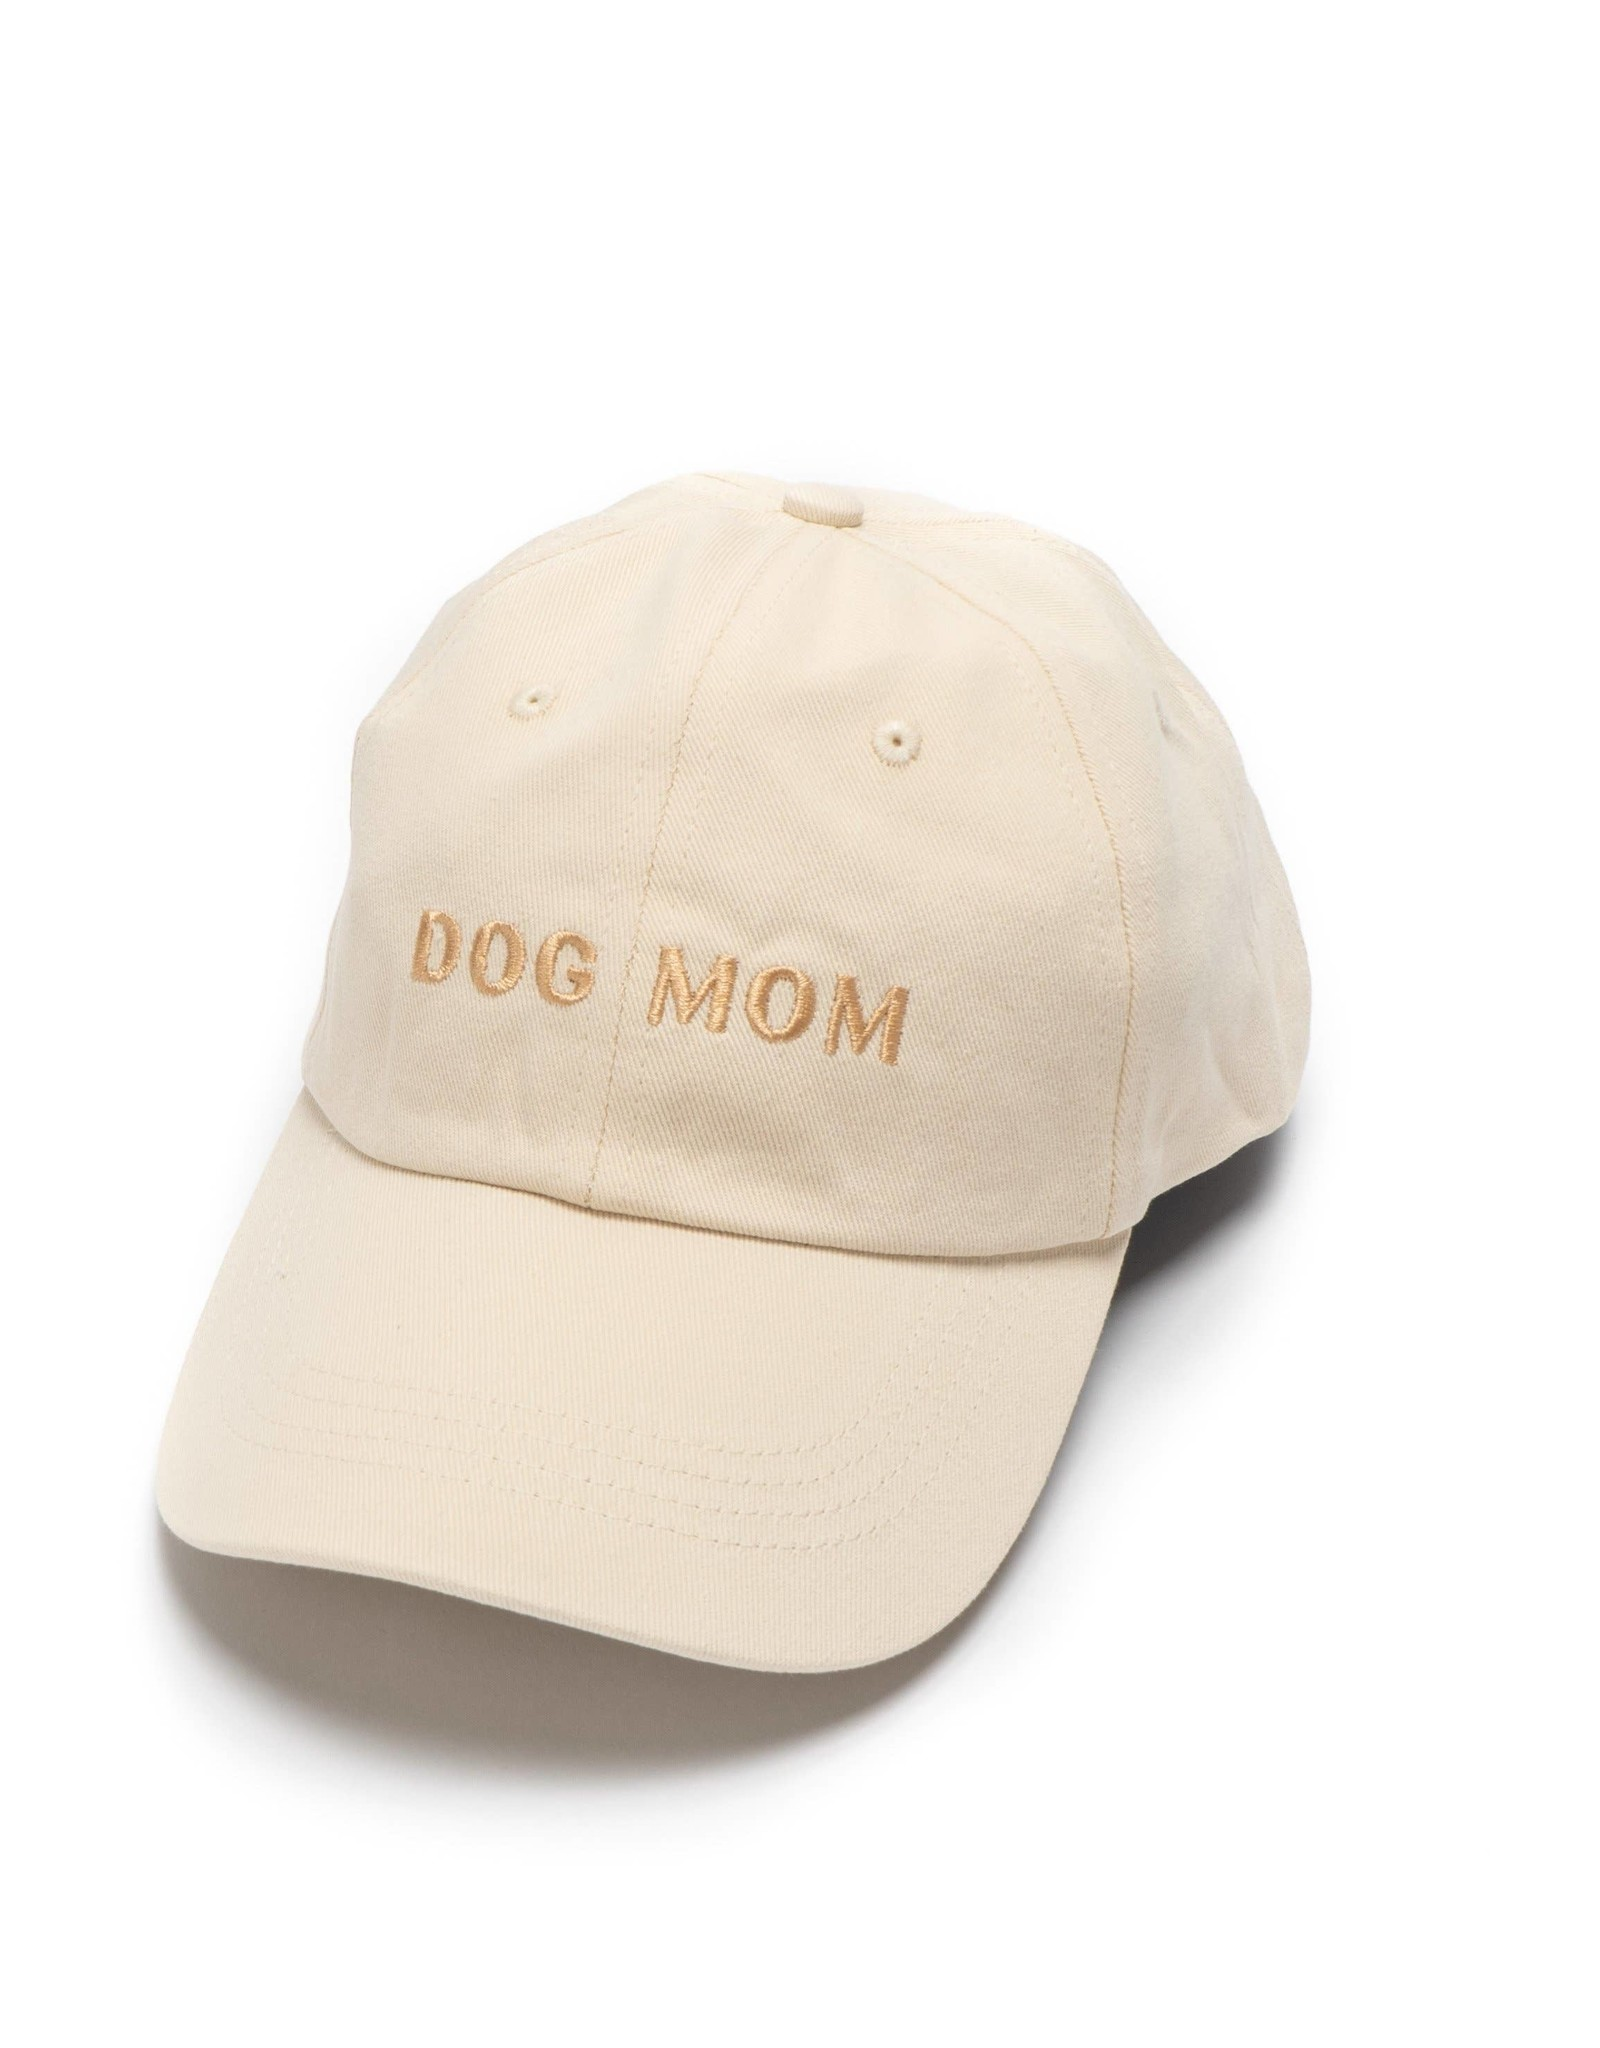 Lucy & Co. Dog Mom Hat